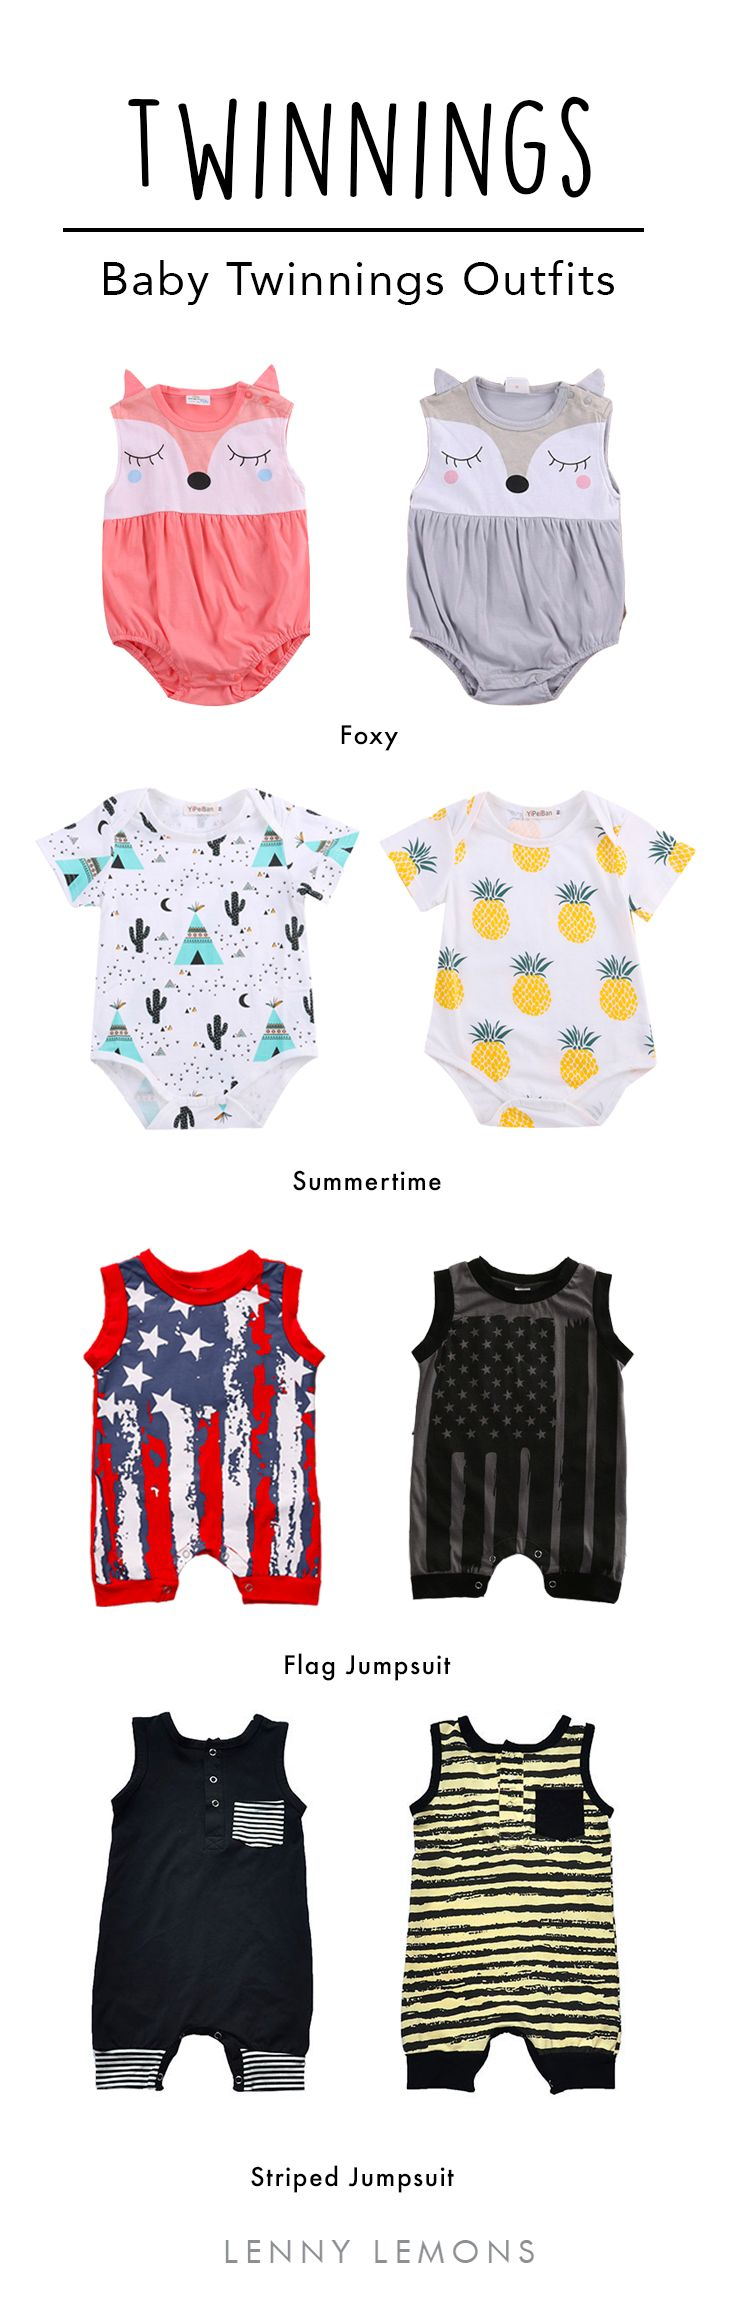 FREE USA SHIPPING! Gorgeous outfits for twins. Choose the right style for the occasion. Summer fashion ideas for babies.